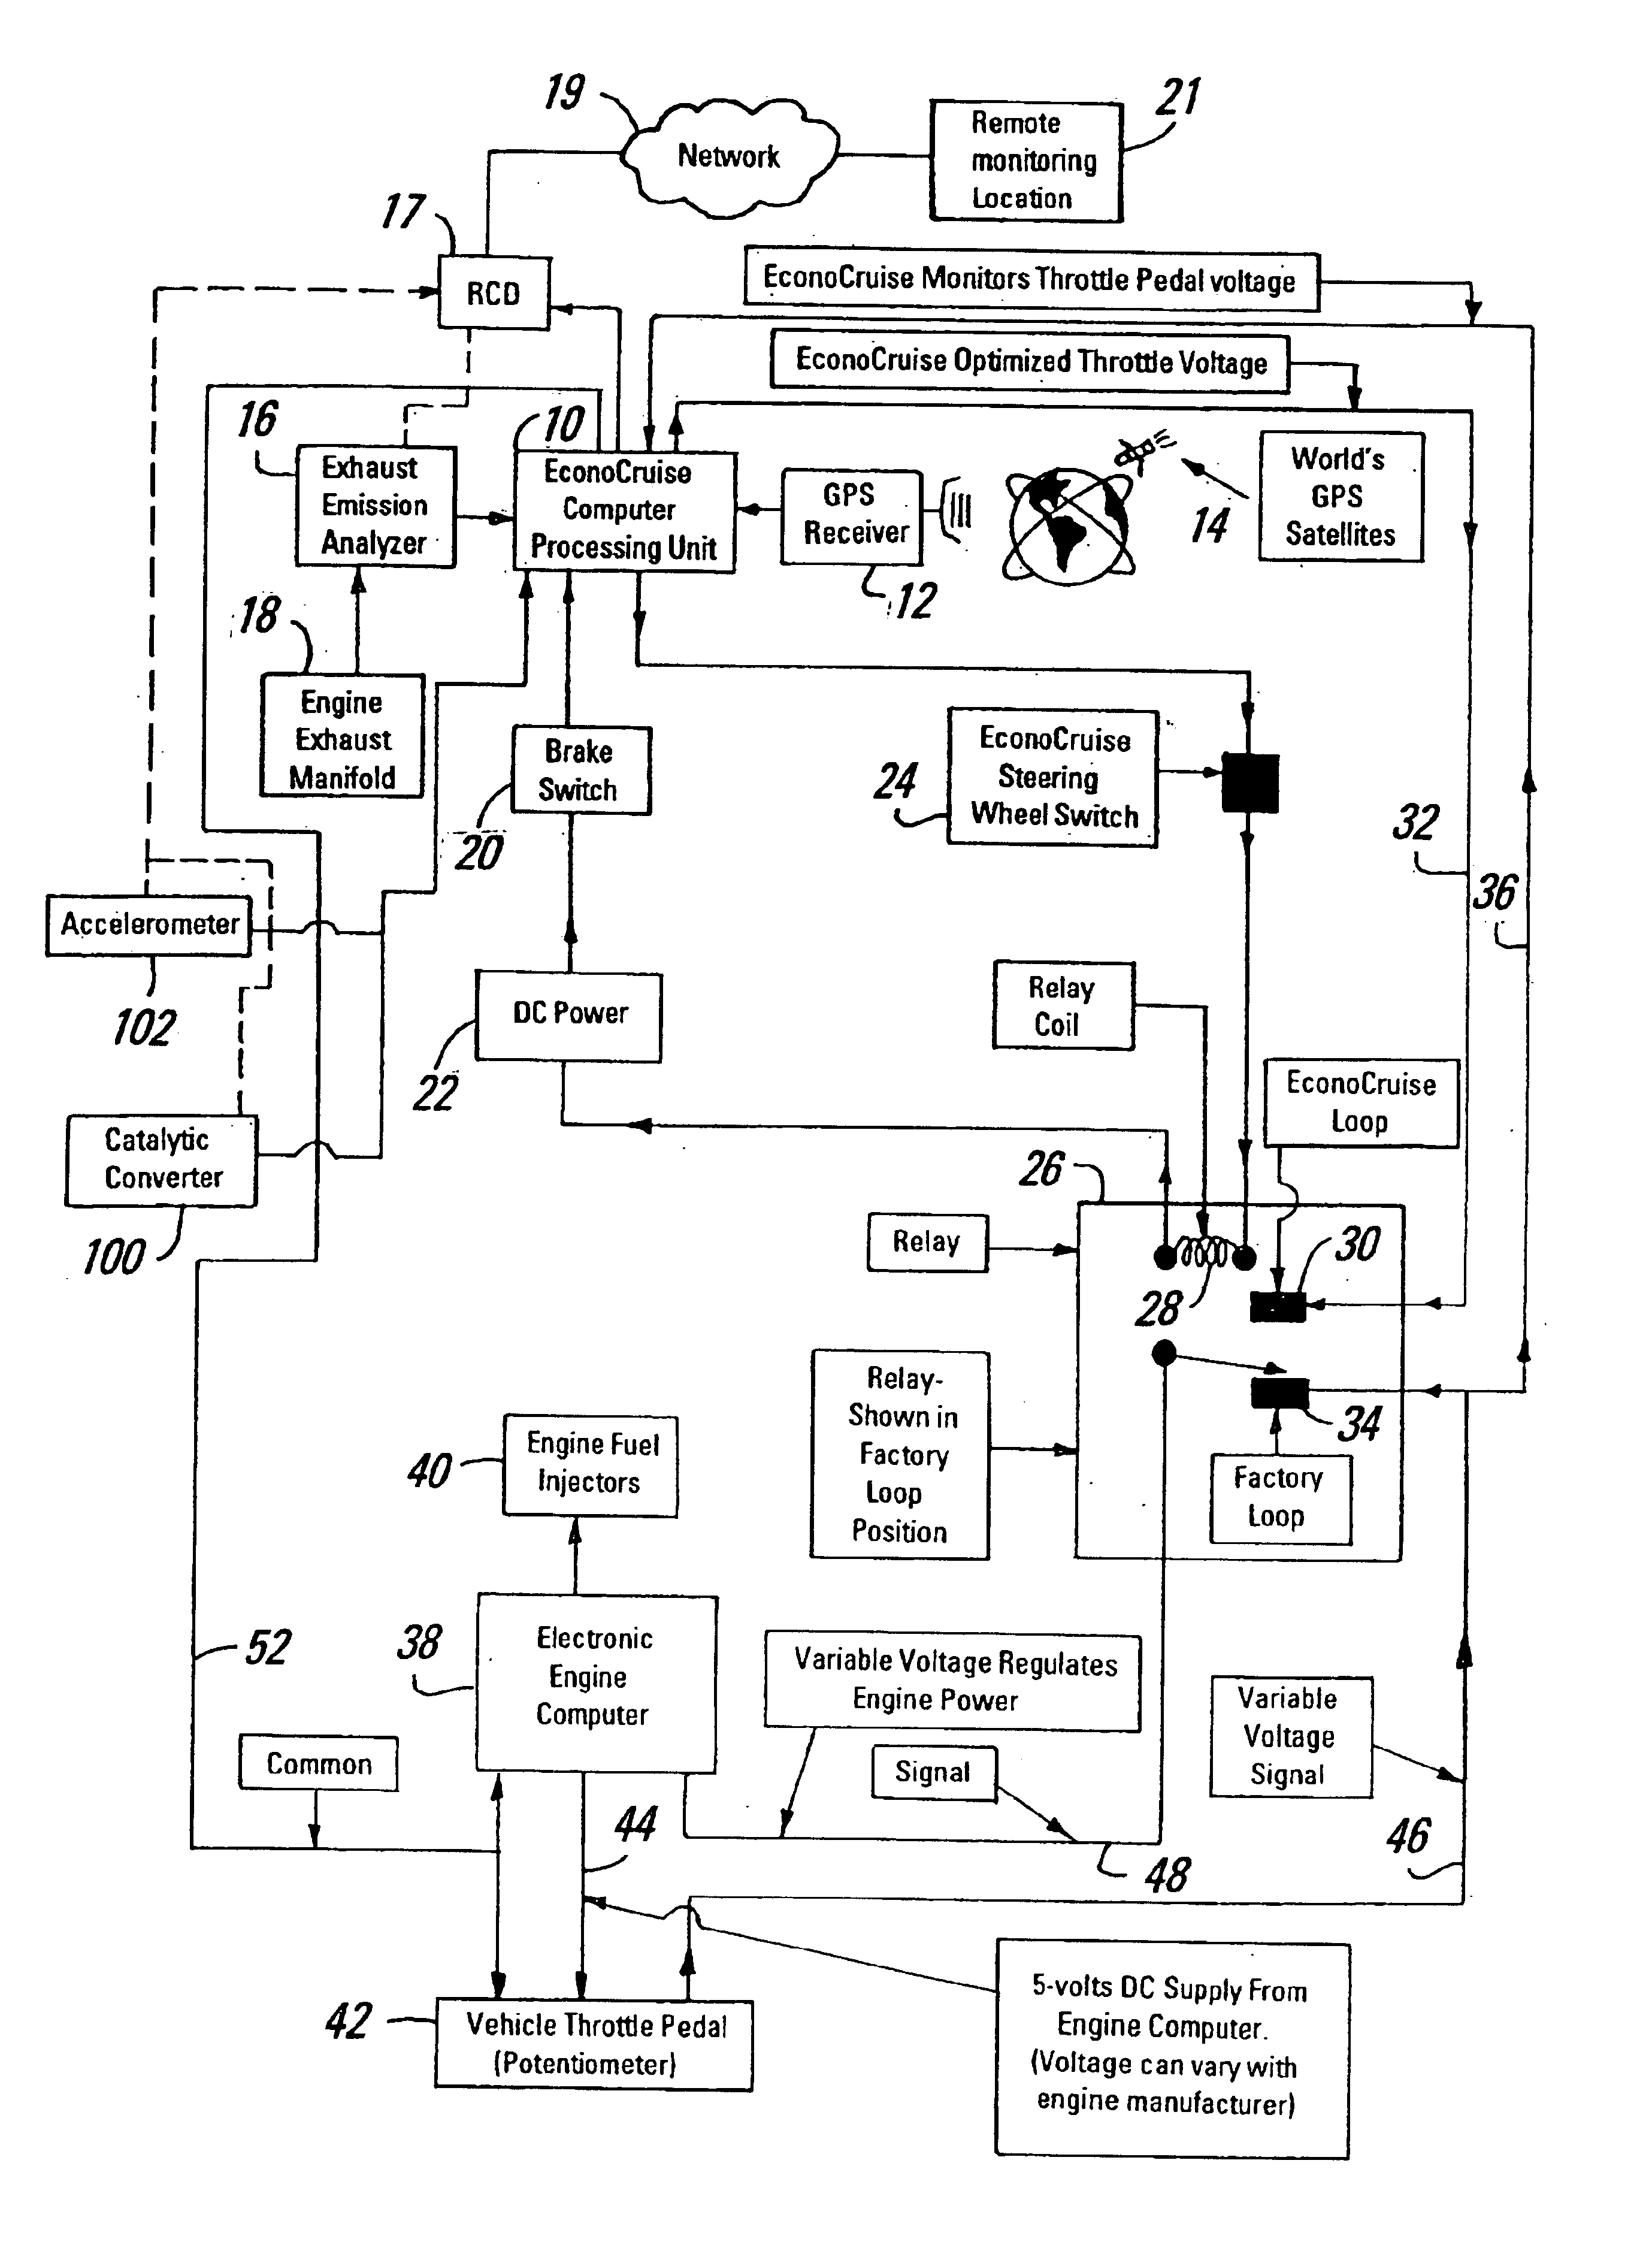 2004 International 7400 Wiring Diagram Archive Of Automotive Suzuki Forenza Engine 4300 Diagrams Opinions About Rh Voterid Co